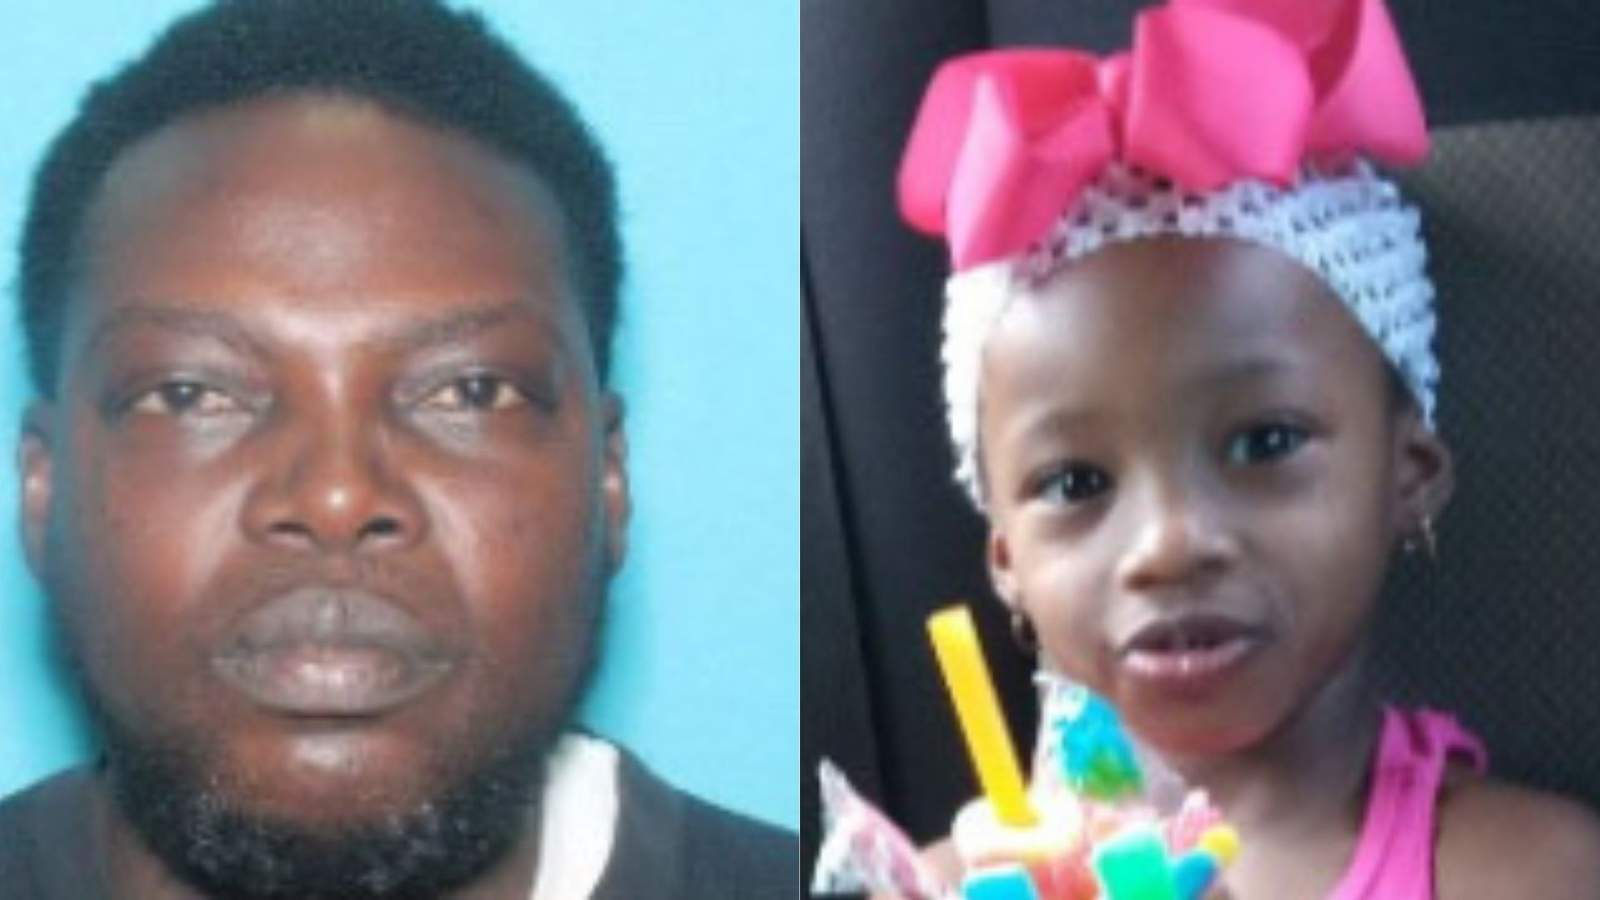 Update Missing 3 Year Old Girl Found Safe Reunited With Parent Officials Say